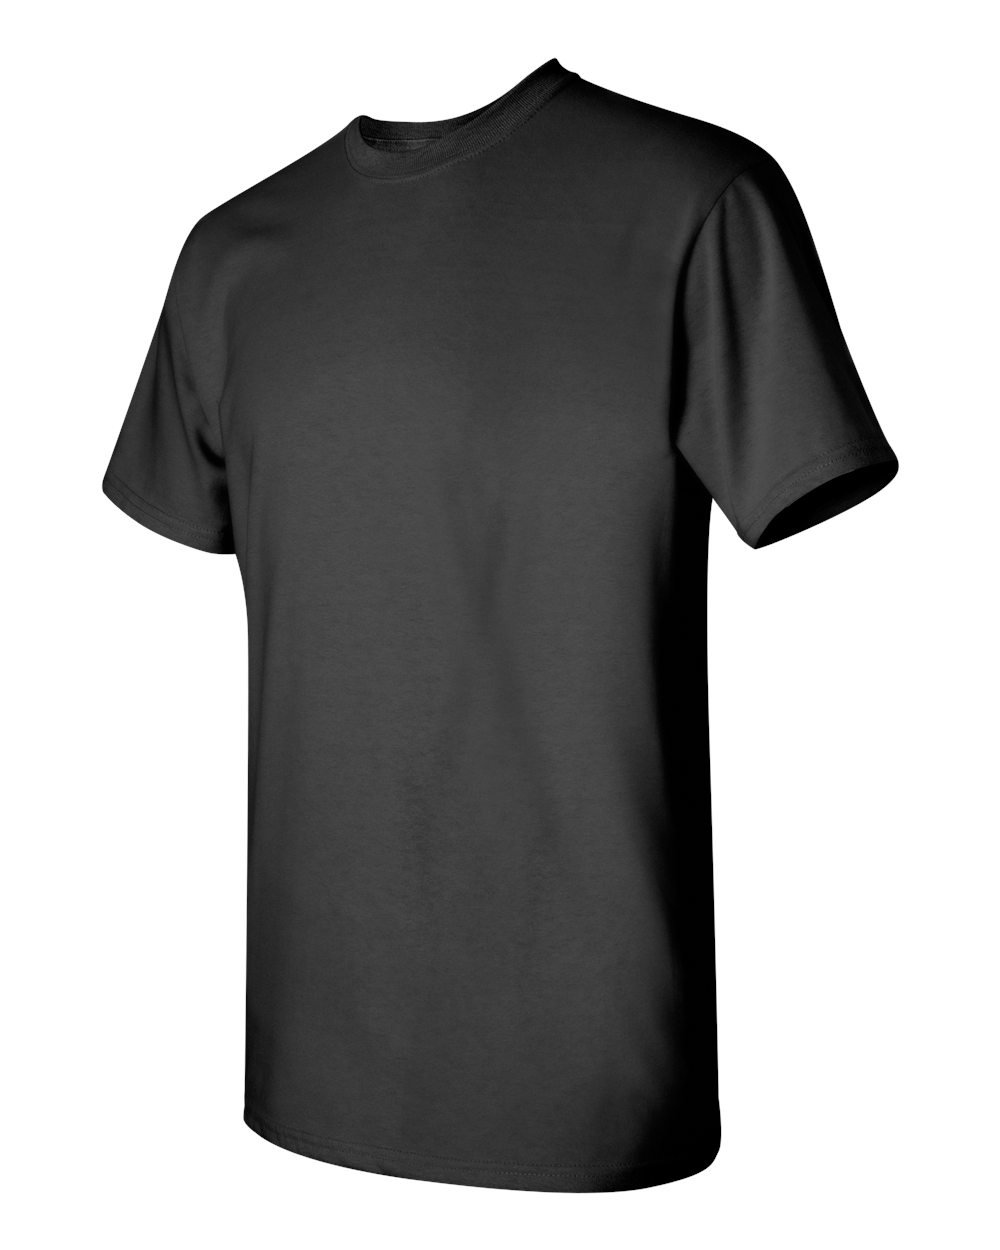 Gildan-Men-039-s-T-Shirts-6-Pack-M-5X-Heavy-Cotton-Crew-Neck-Tshirts-High-Quality thumbnail 6